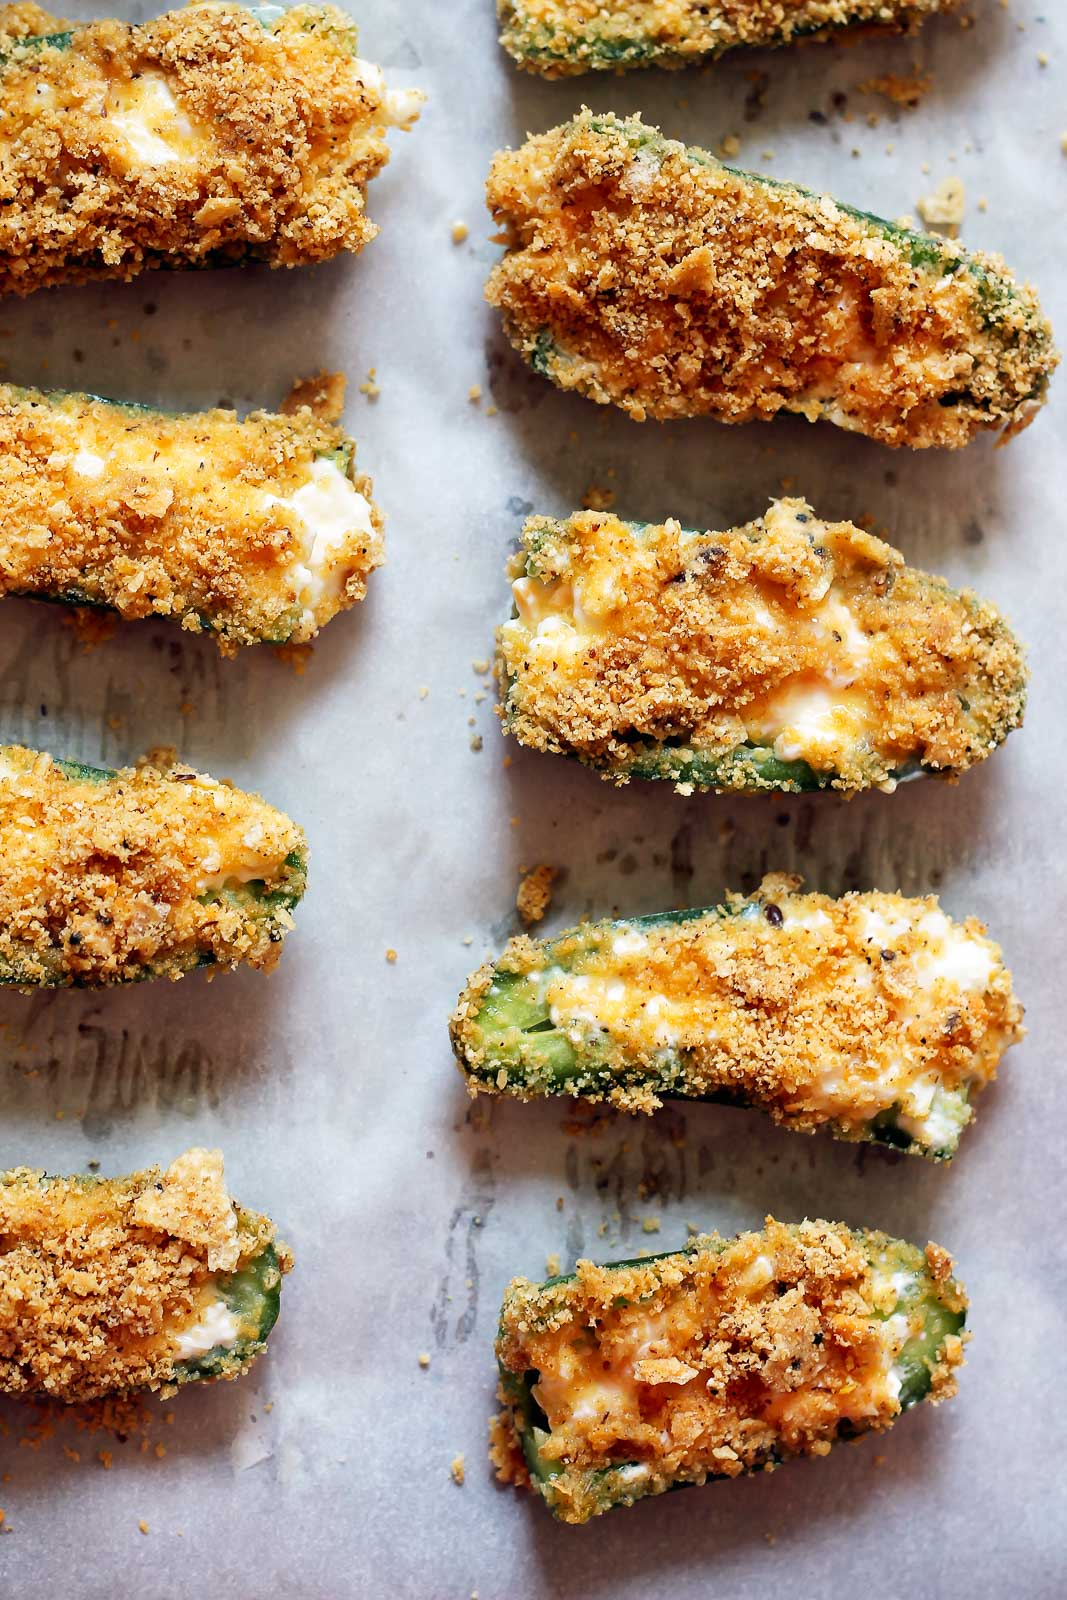 Incredible lightened up baked jalapeno poppers with a sriracha tortilla chip coating! These poppers are a hit for game day or any time you're entertaining. Also great as a snack!